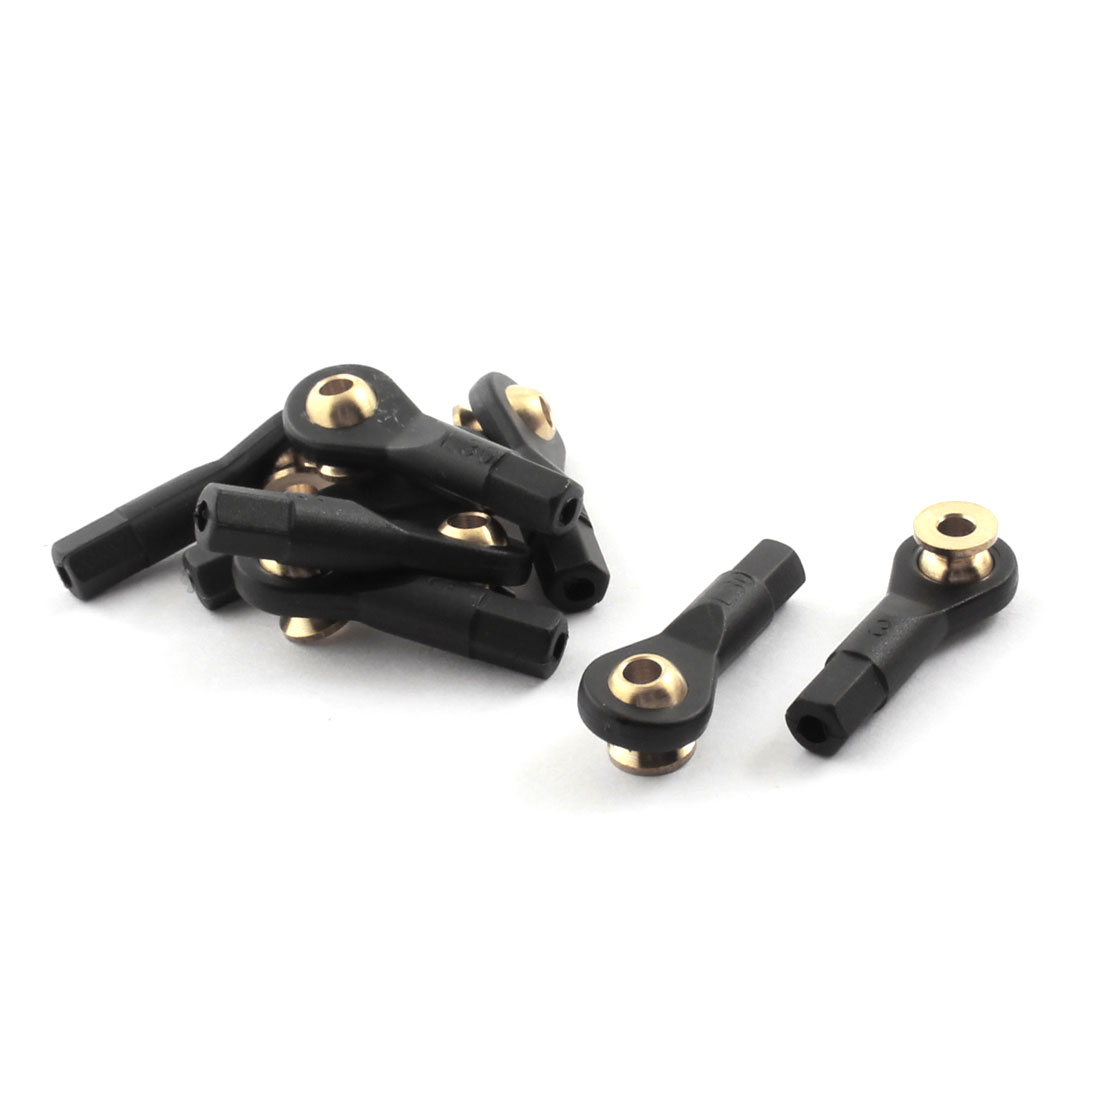 8Pcs RC Car Spare Parts Tie Rod Ends Brass Ball Link 3x3x30mm